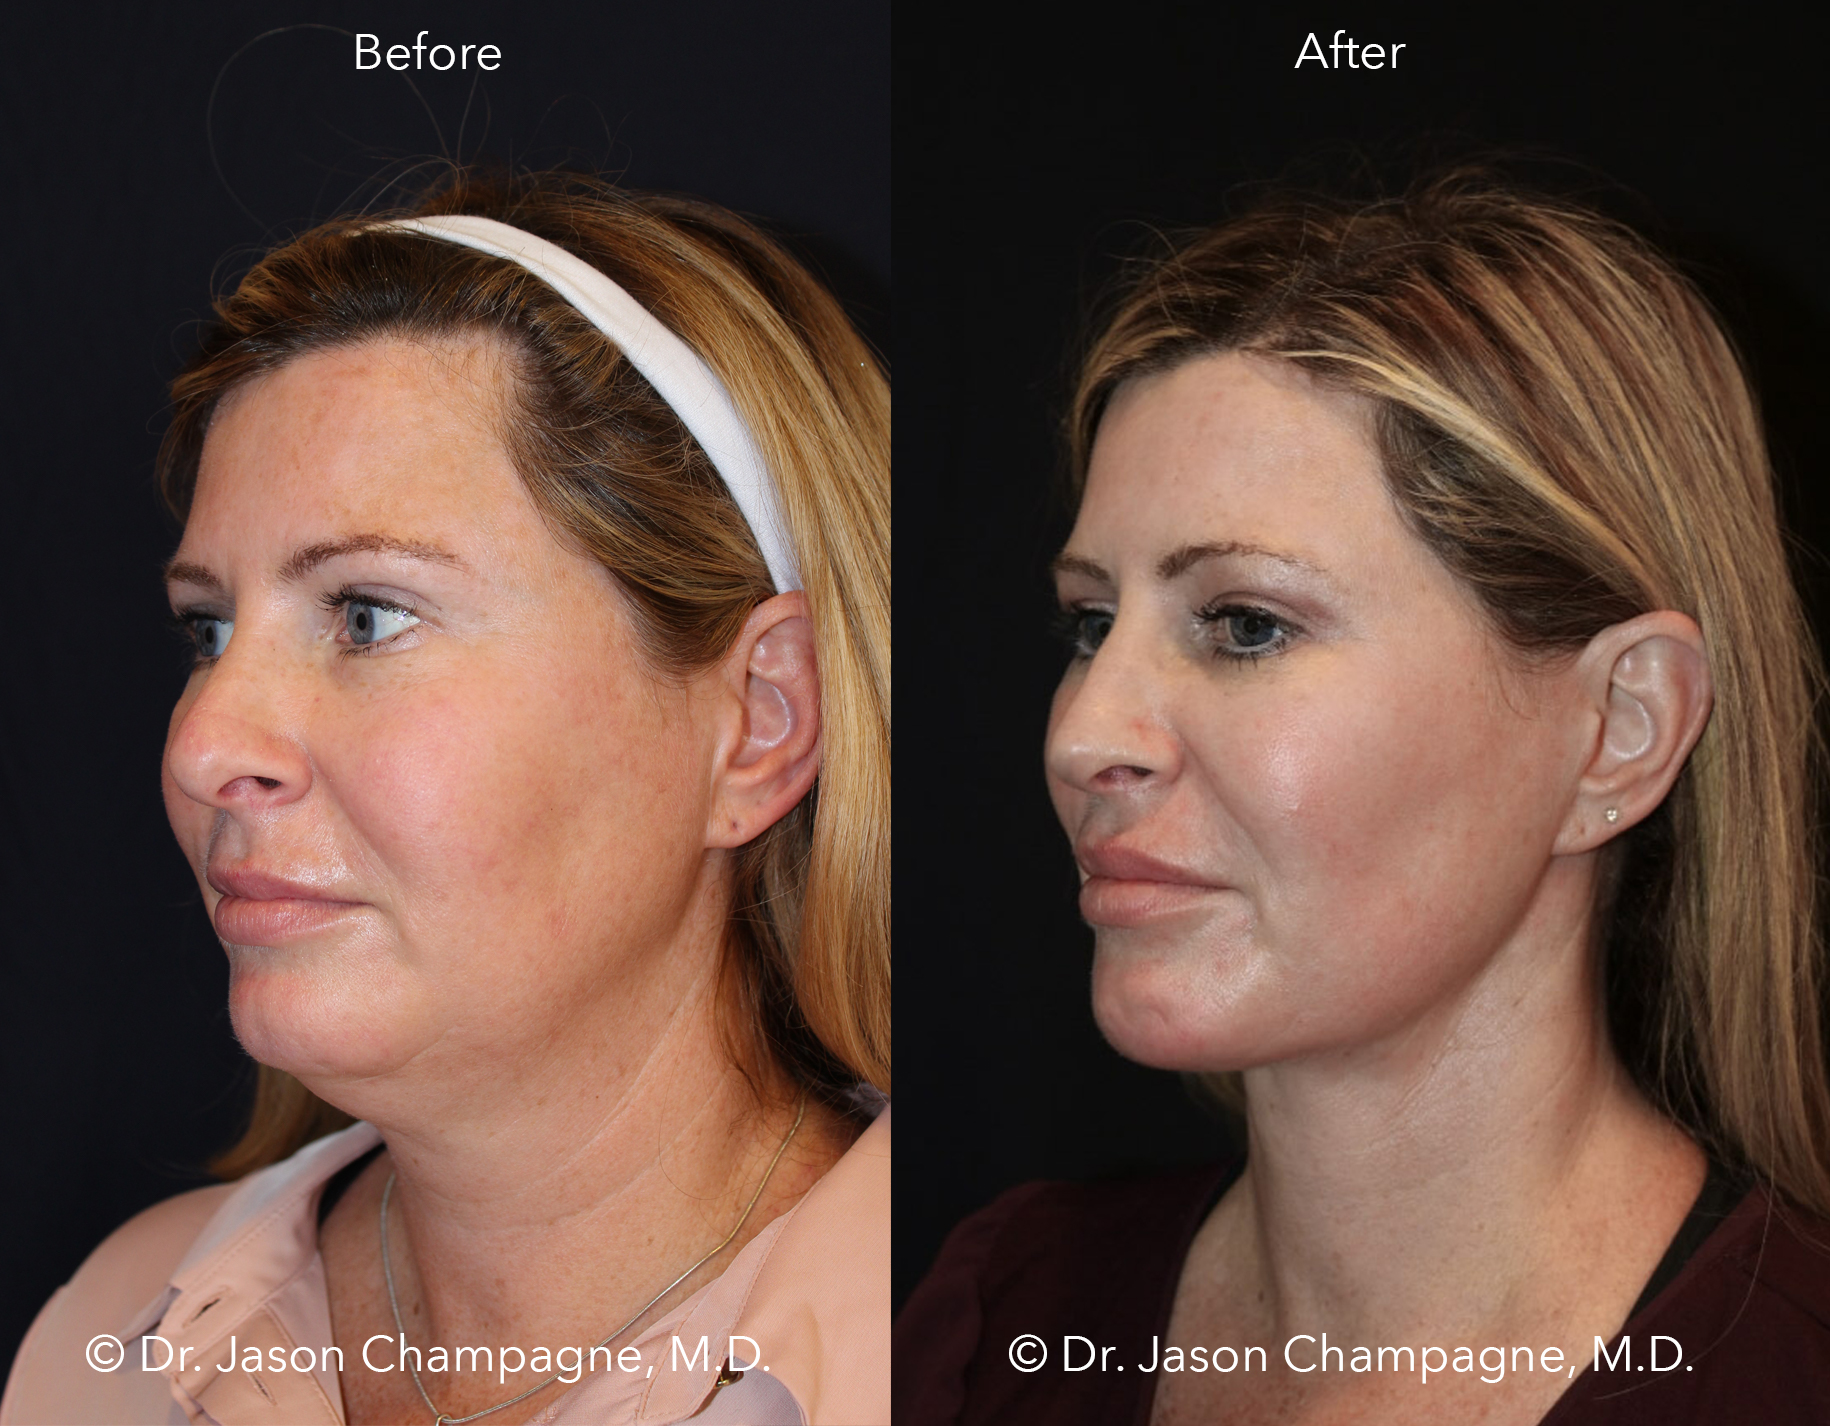 Dr-Jason-Champagne-Neck-Liposuction-Chin-Implant-Neck-Lift-Face-Lift-Rhinoplasty-Advanced-Radio-Frequency-Skin-Tightening-CO2-Laser-Skin-Resurfacing-Buccal-Fat-Excision-Before-and-After-3:4.jpg